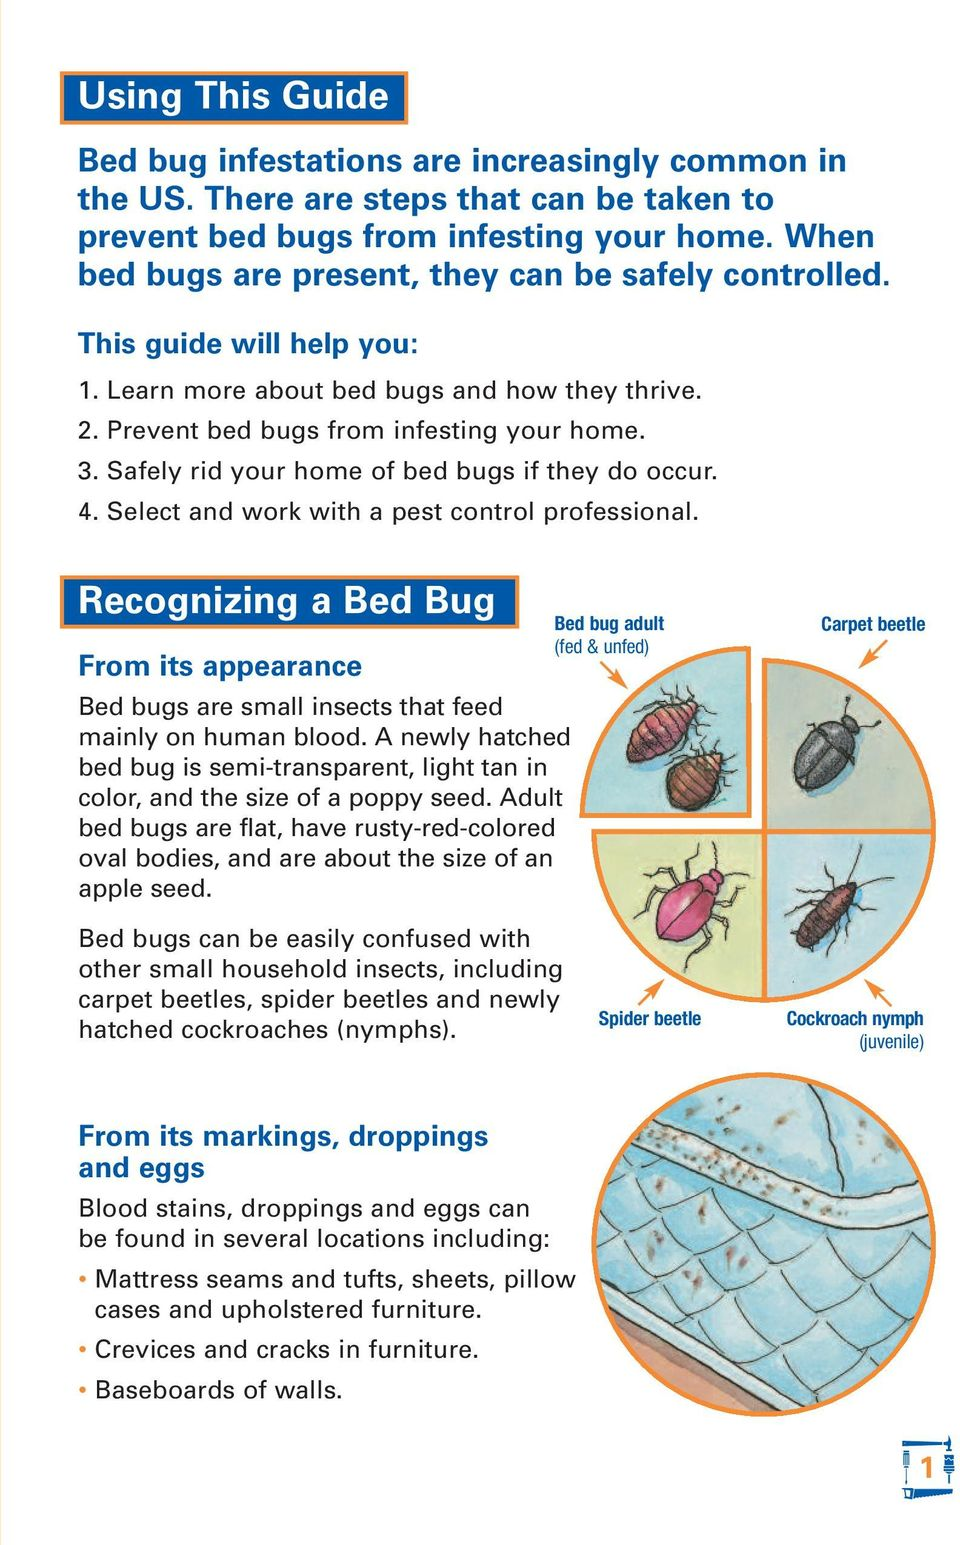 Safely rid your home of bed bugs if they do occur. 4. Select and work with a pest control professional.